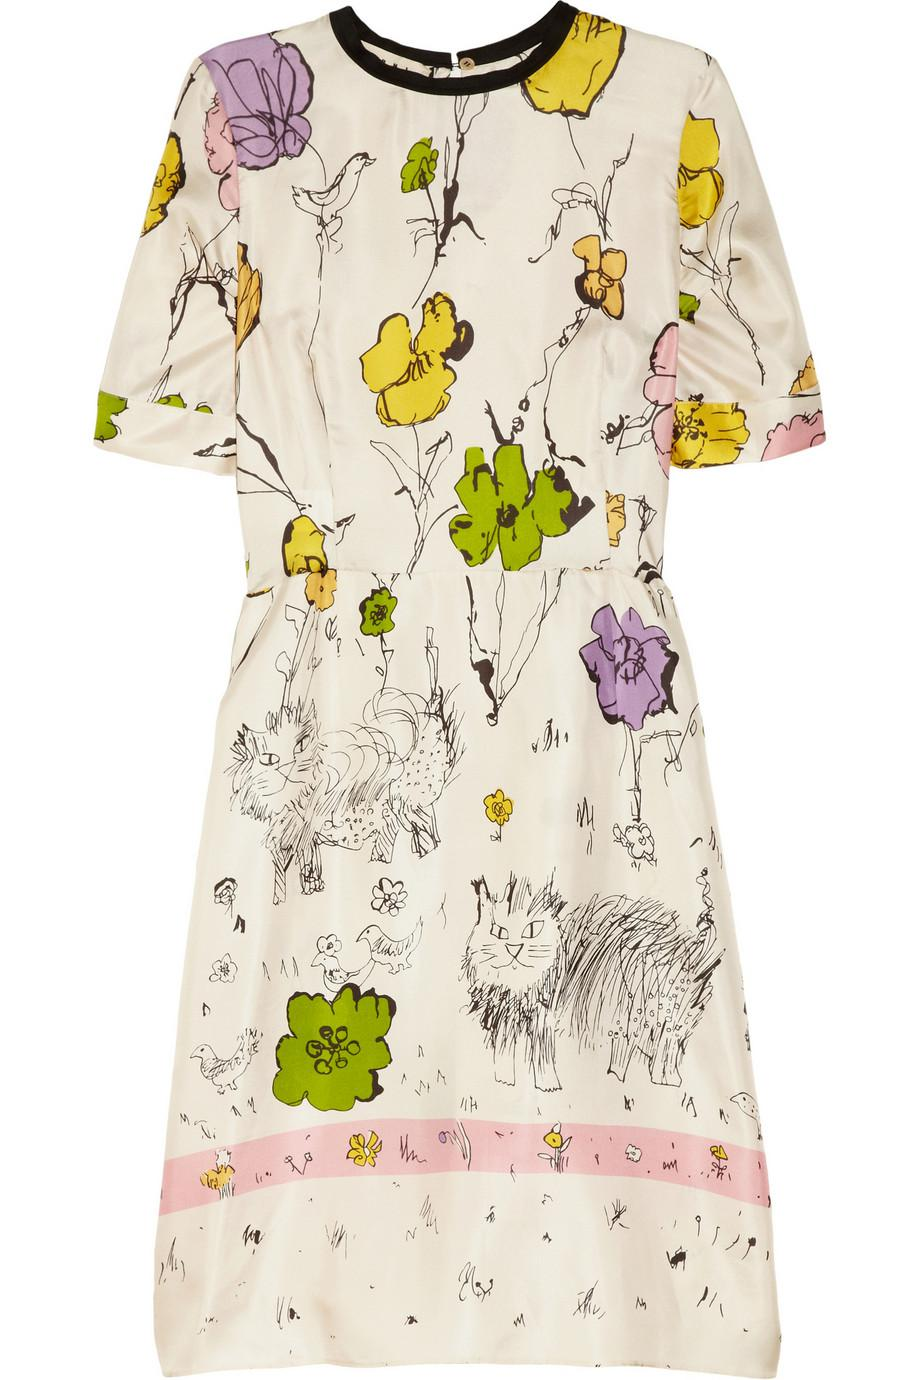 71-marni-women-s-scratchy-cat-printed-silk-twill-dress-1